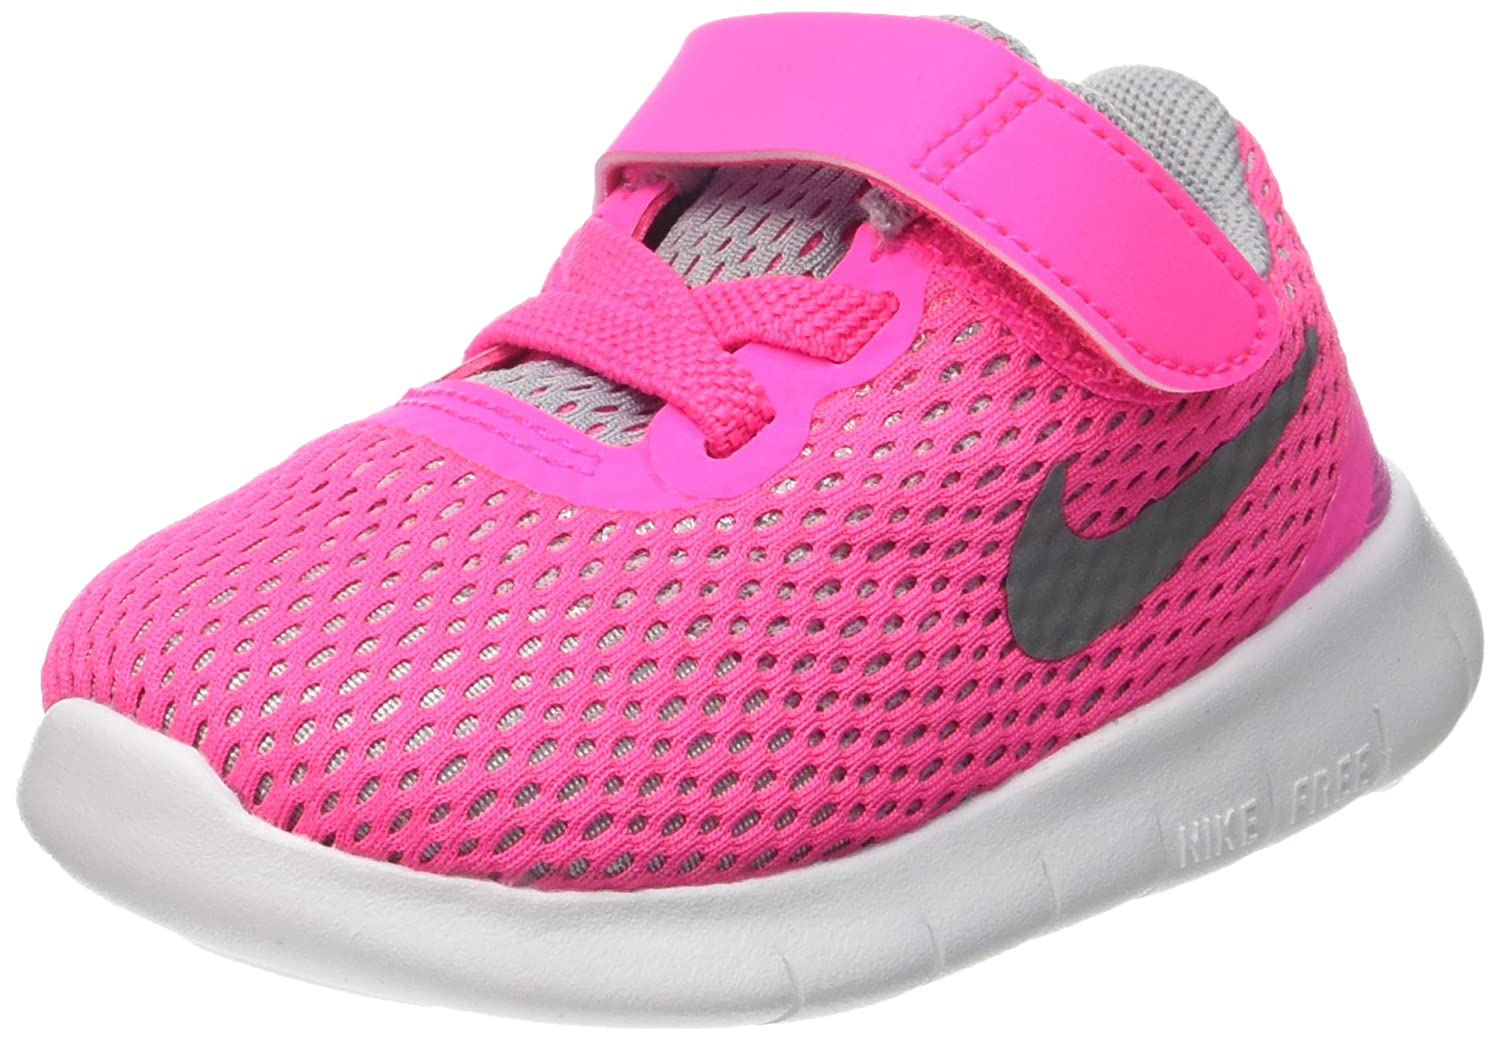 90ff90492900 Nike Free RN (TDV) Toddlers Shoes Pink Blast Metallic Silver-White  834042-600 (6)  Buy Online at Low Prices in India - Amazon.in